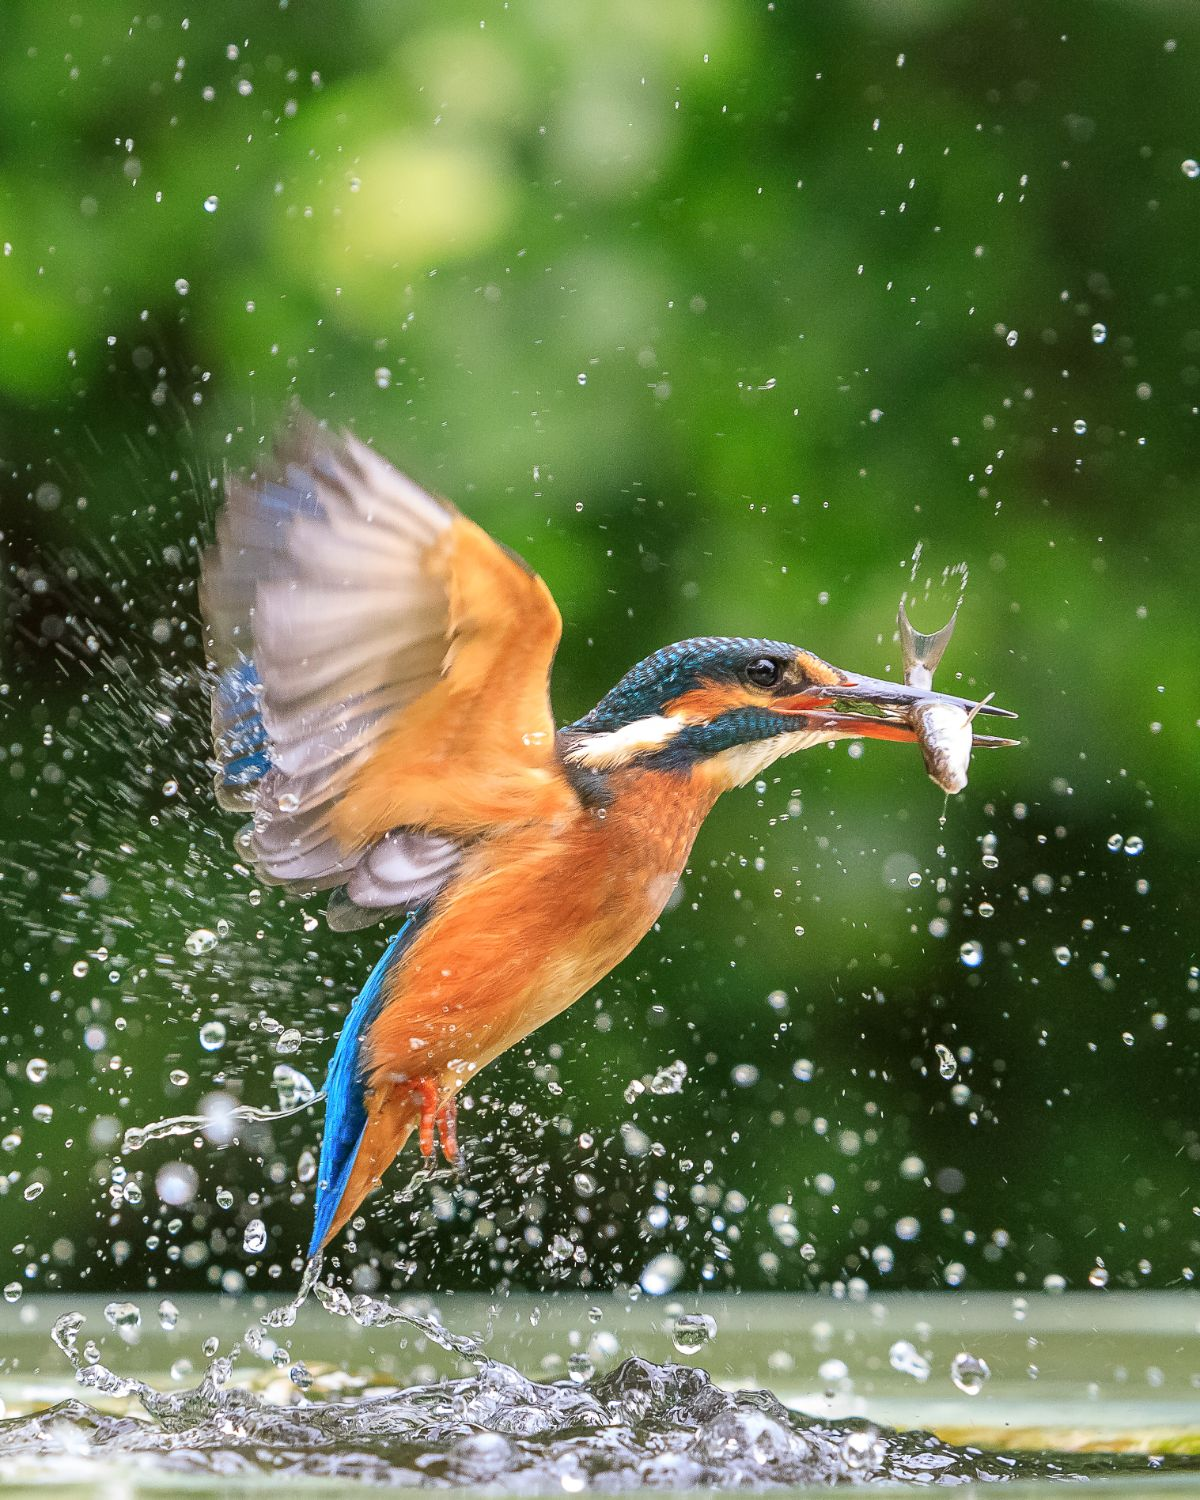 https://i1.wp.com/digital-photography-school.com/wp-content/uploads/2019/08/Stunning-Capture-of-Kingfisher-Catching-a-Fish-janet-smith.jpg?resize=1200%2C1500&ssl=1